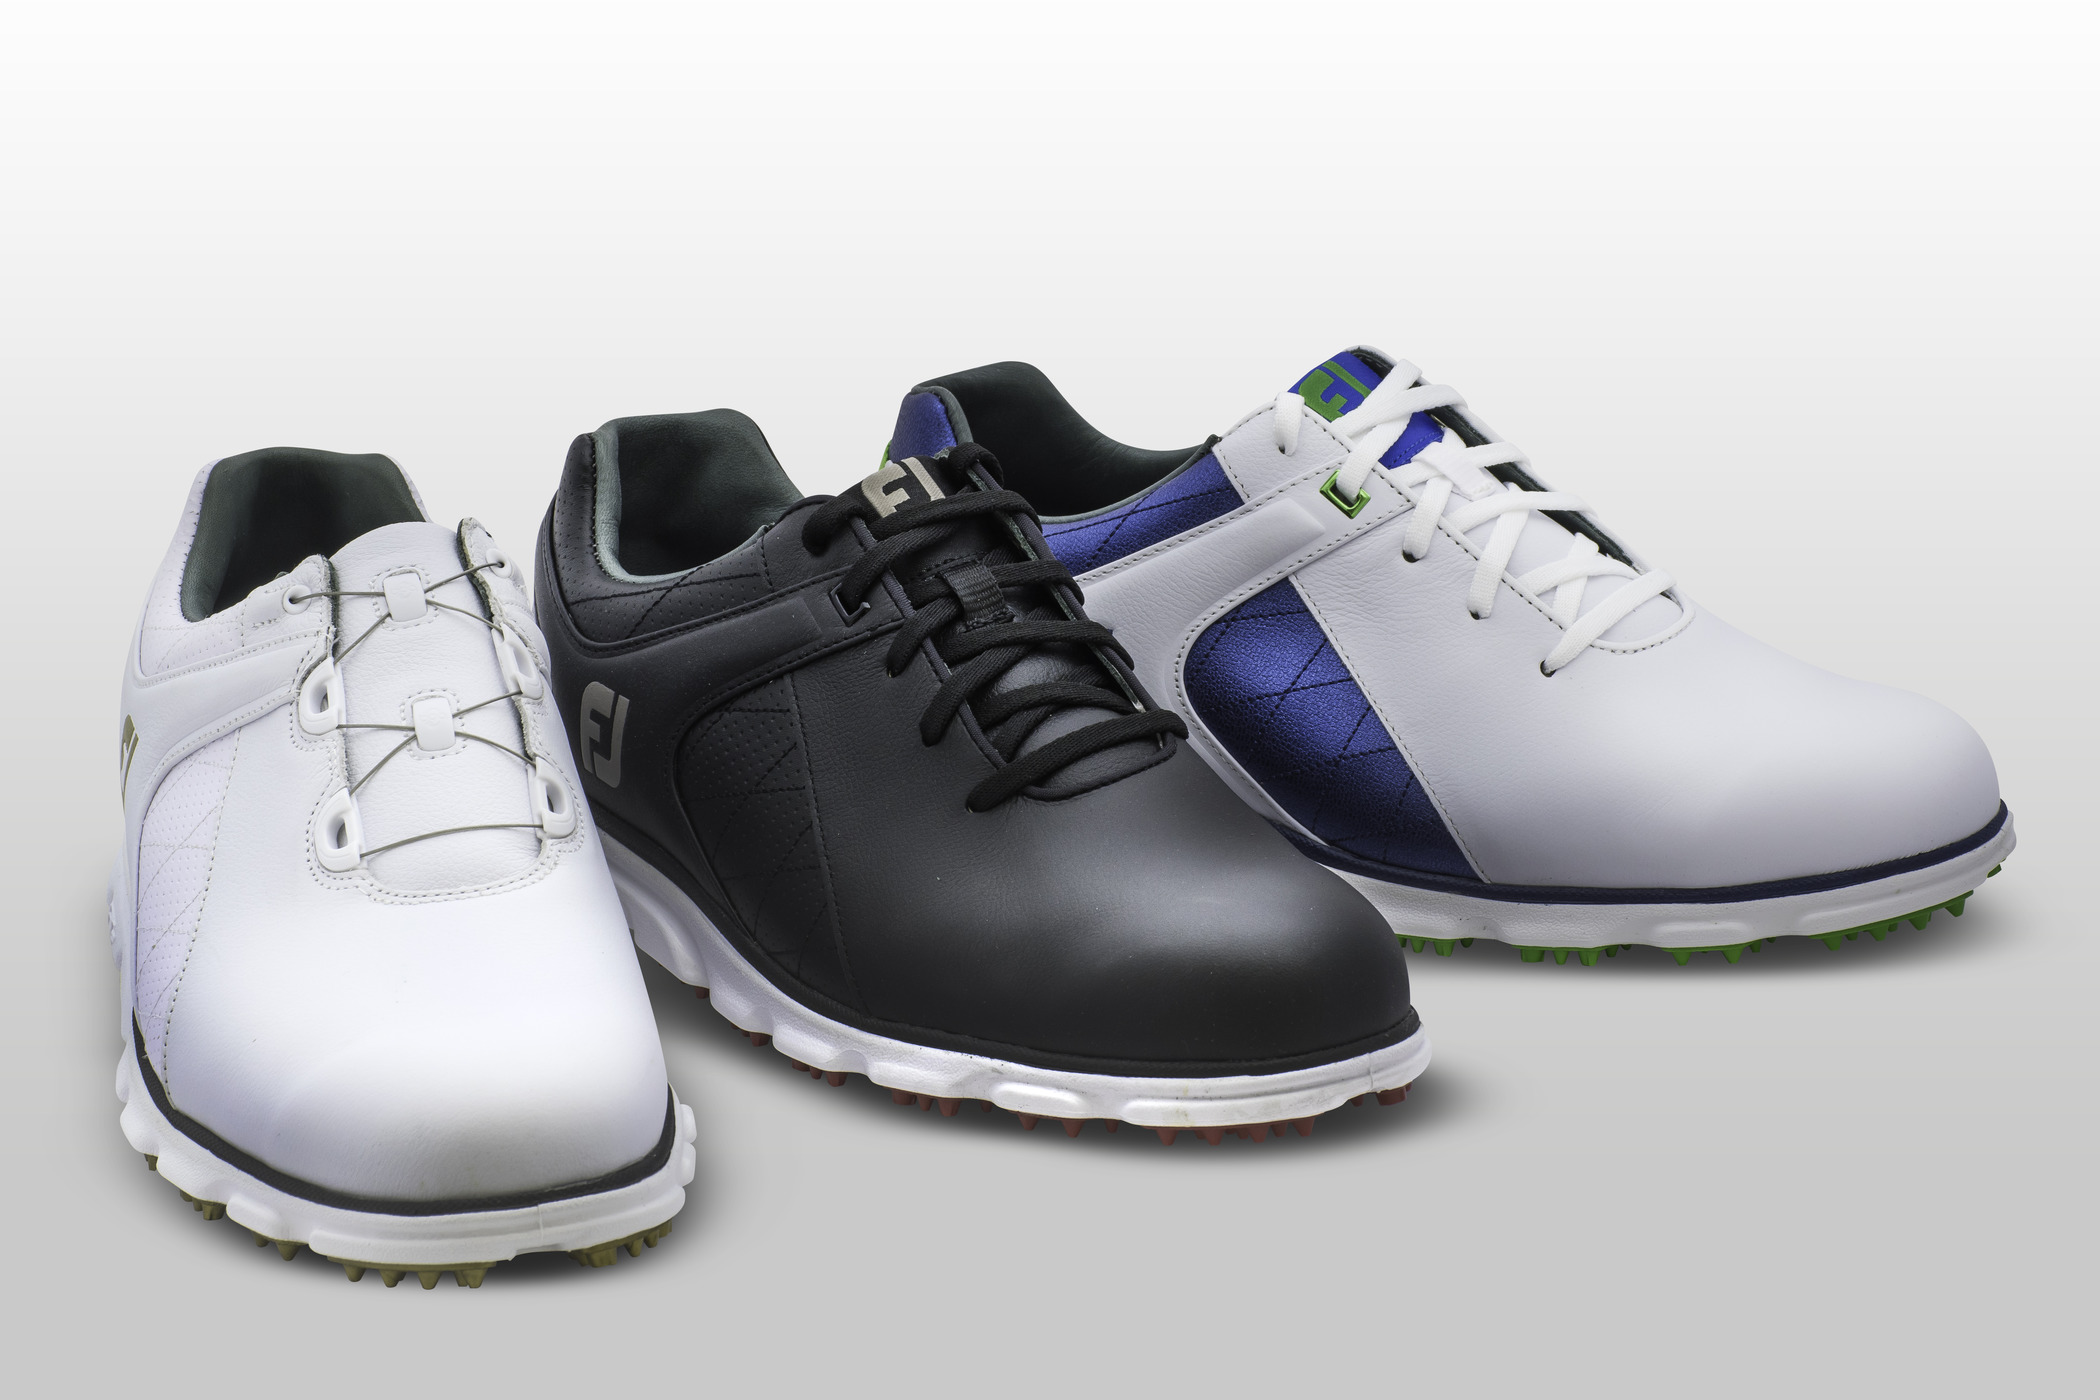 FootJoy Pro/SL Article cover photo